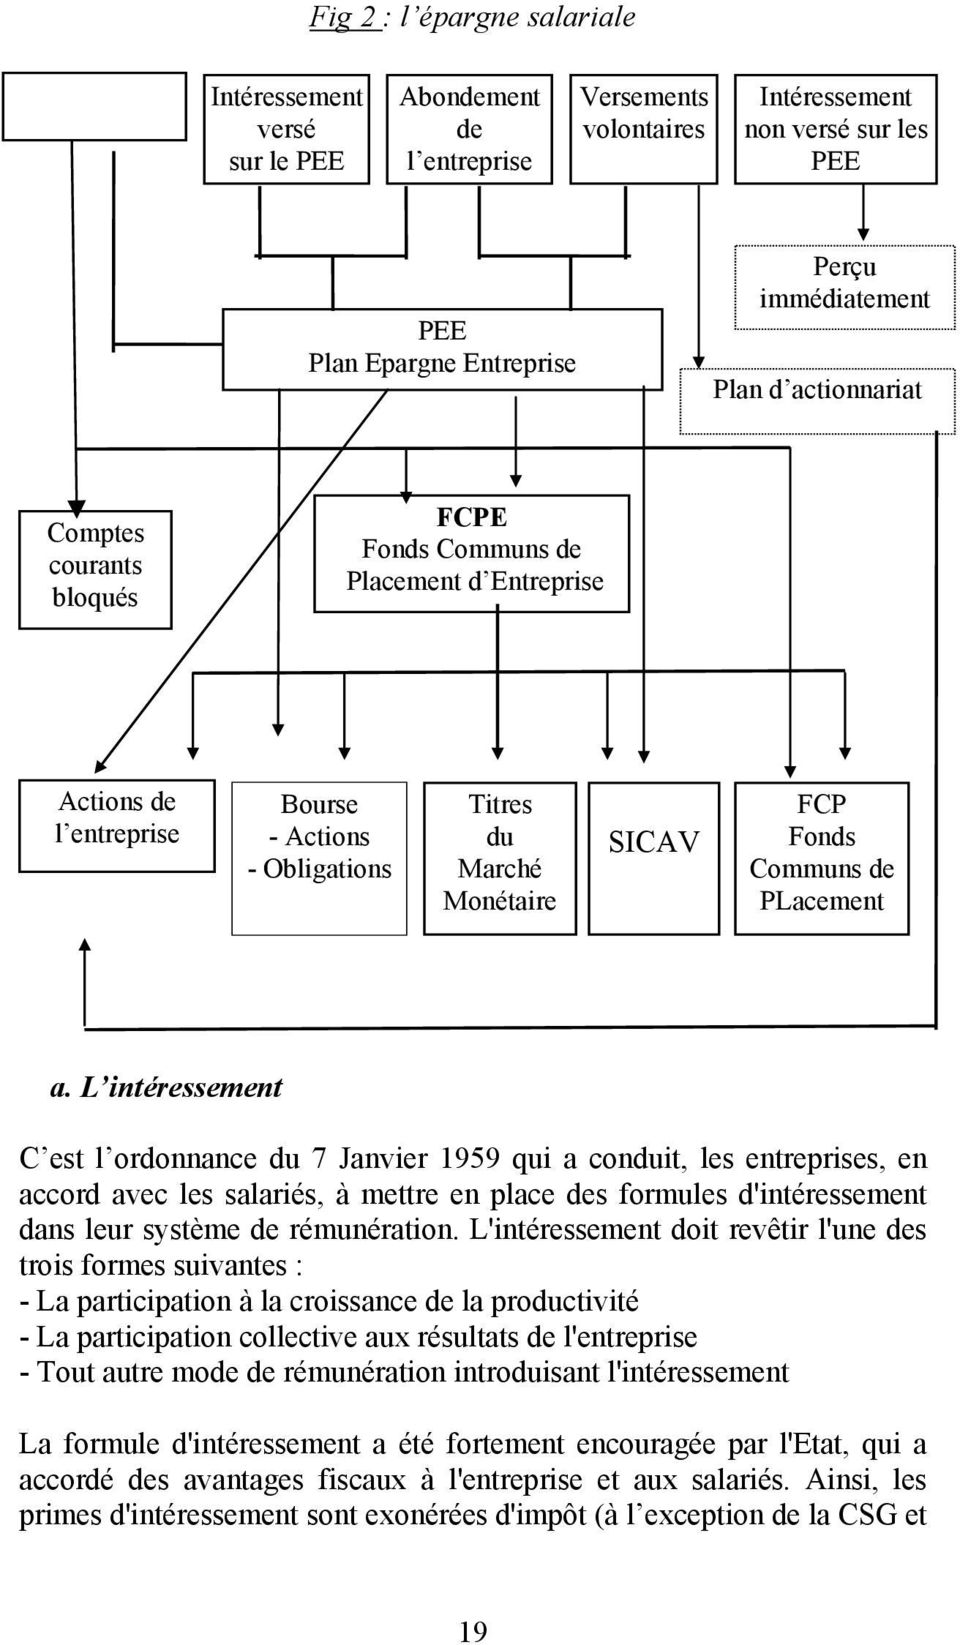 Fonds Communs de PLacement a.